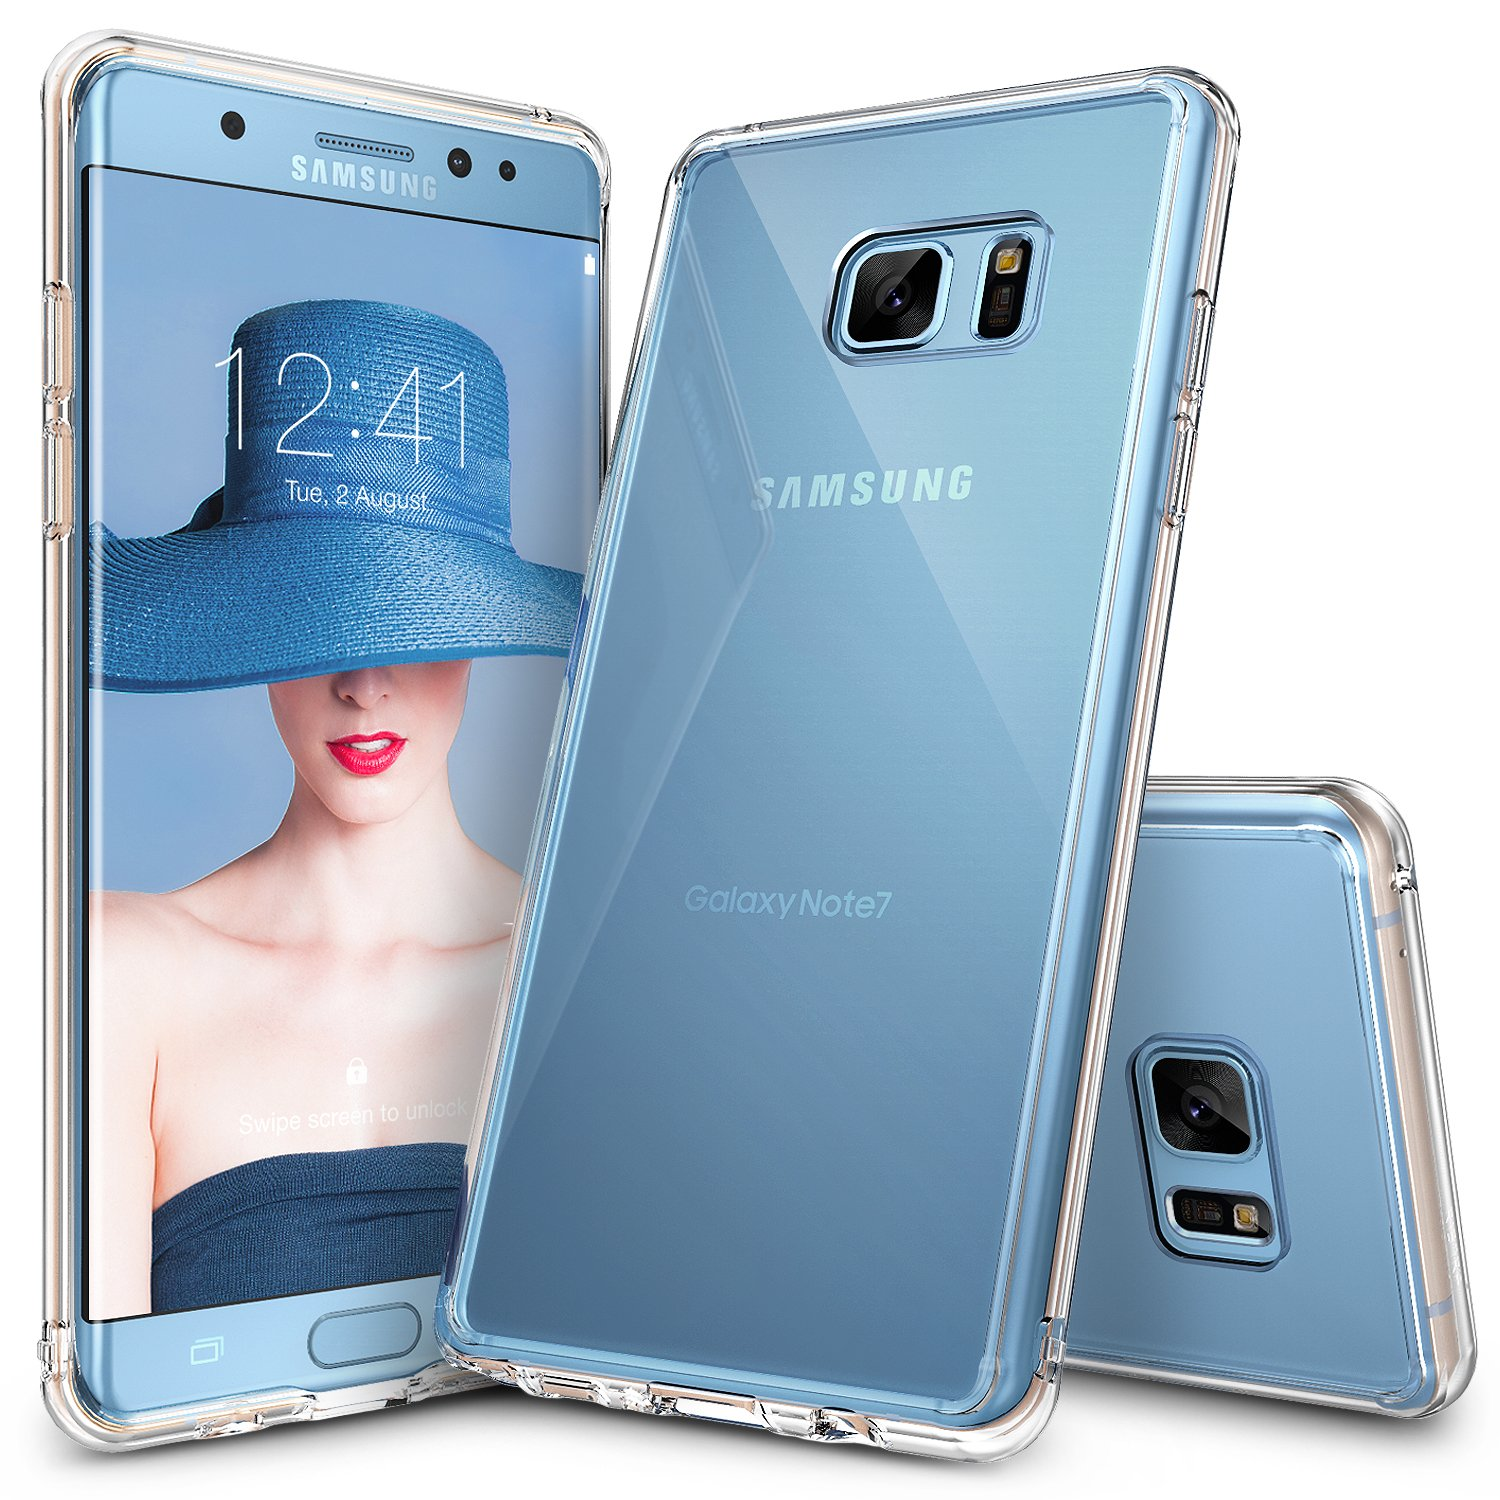 best galaxy note 7 cases